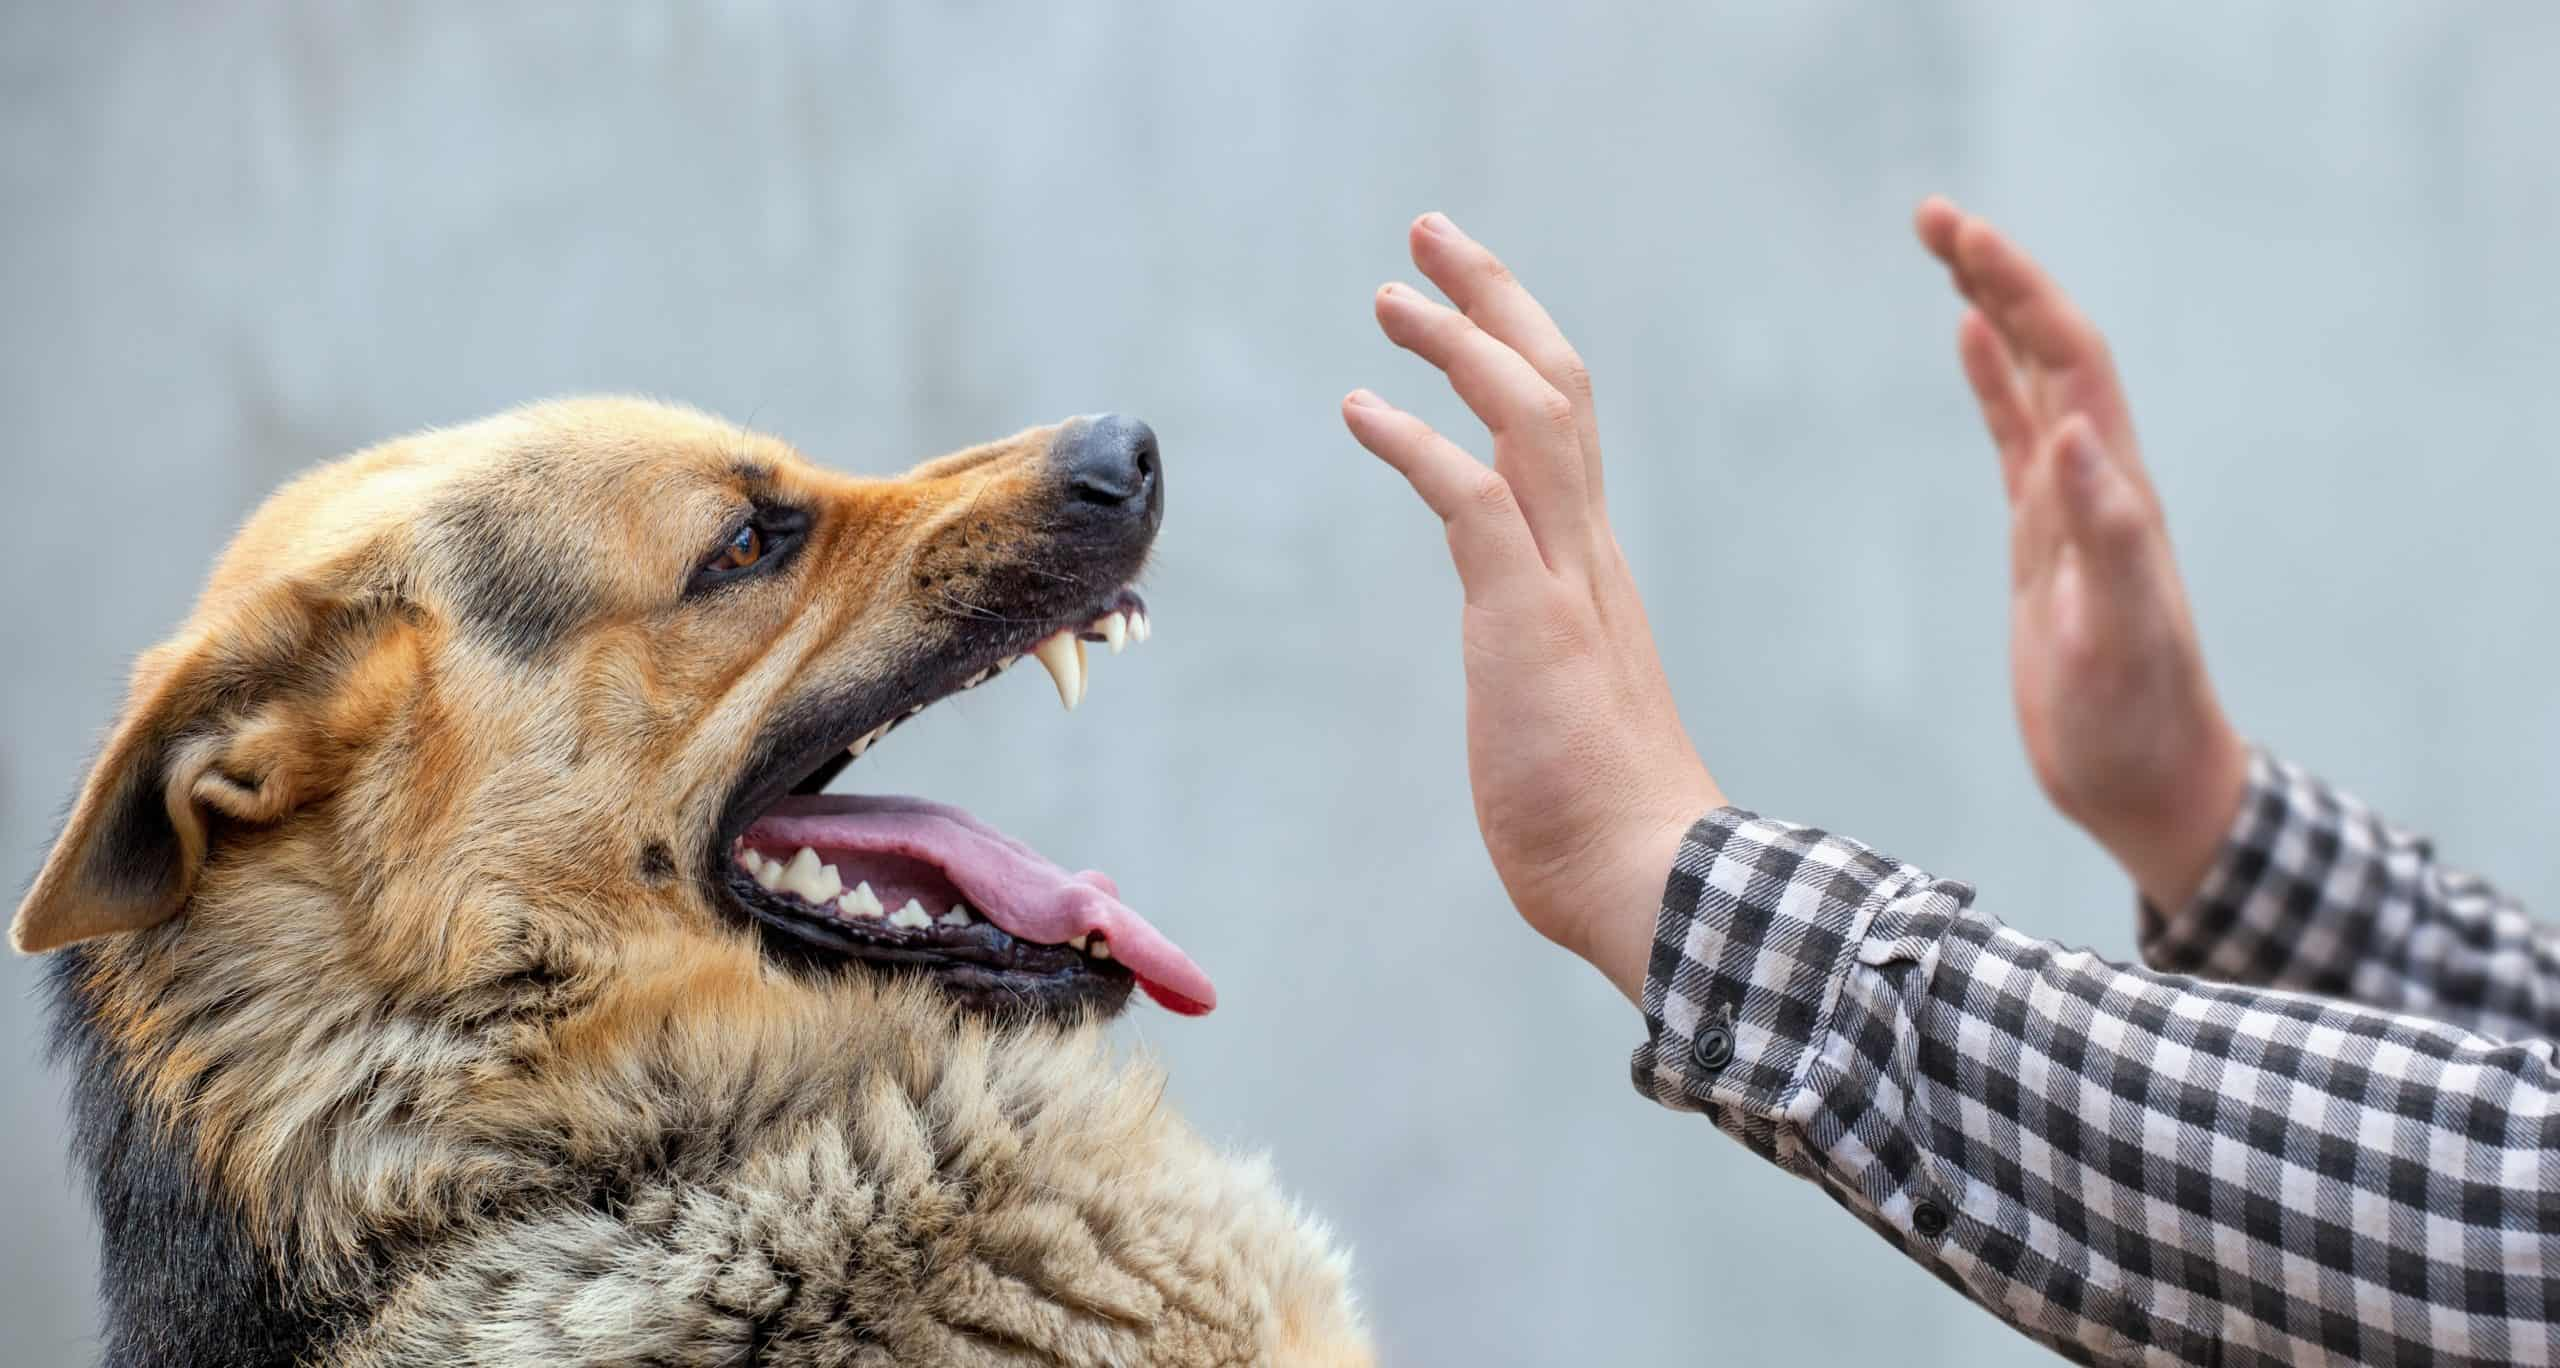 Man holds up his hands to calm an angry dog. Dog biting: Understand the common reasons why your dog might bite including playfulness, anxiety, illness or defending their territory.